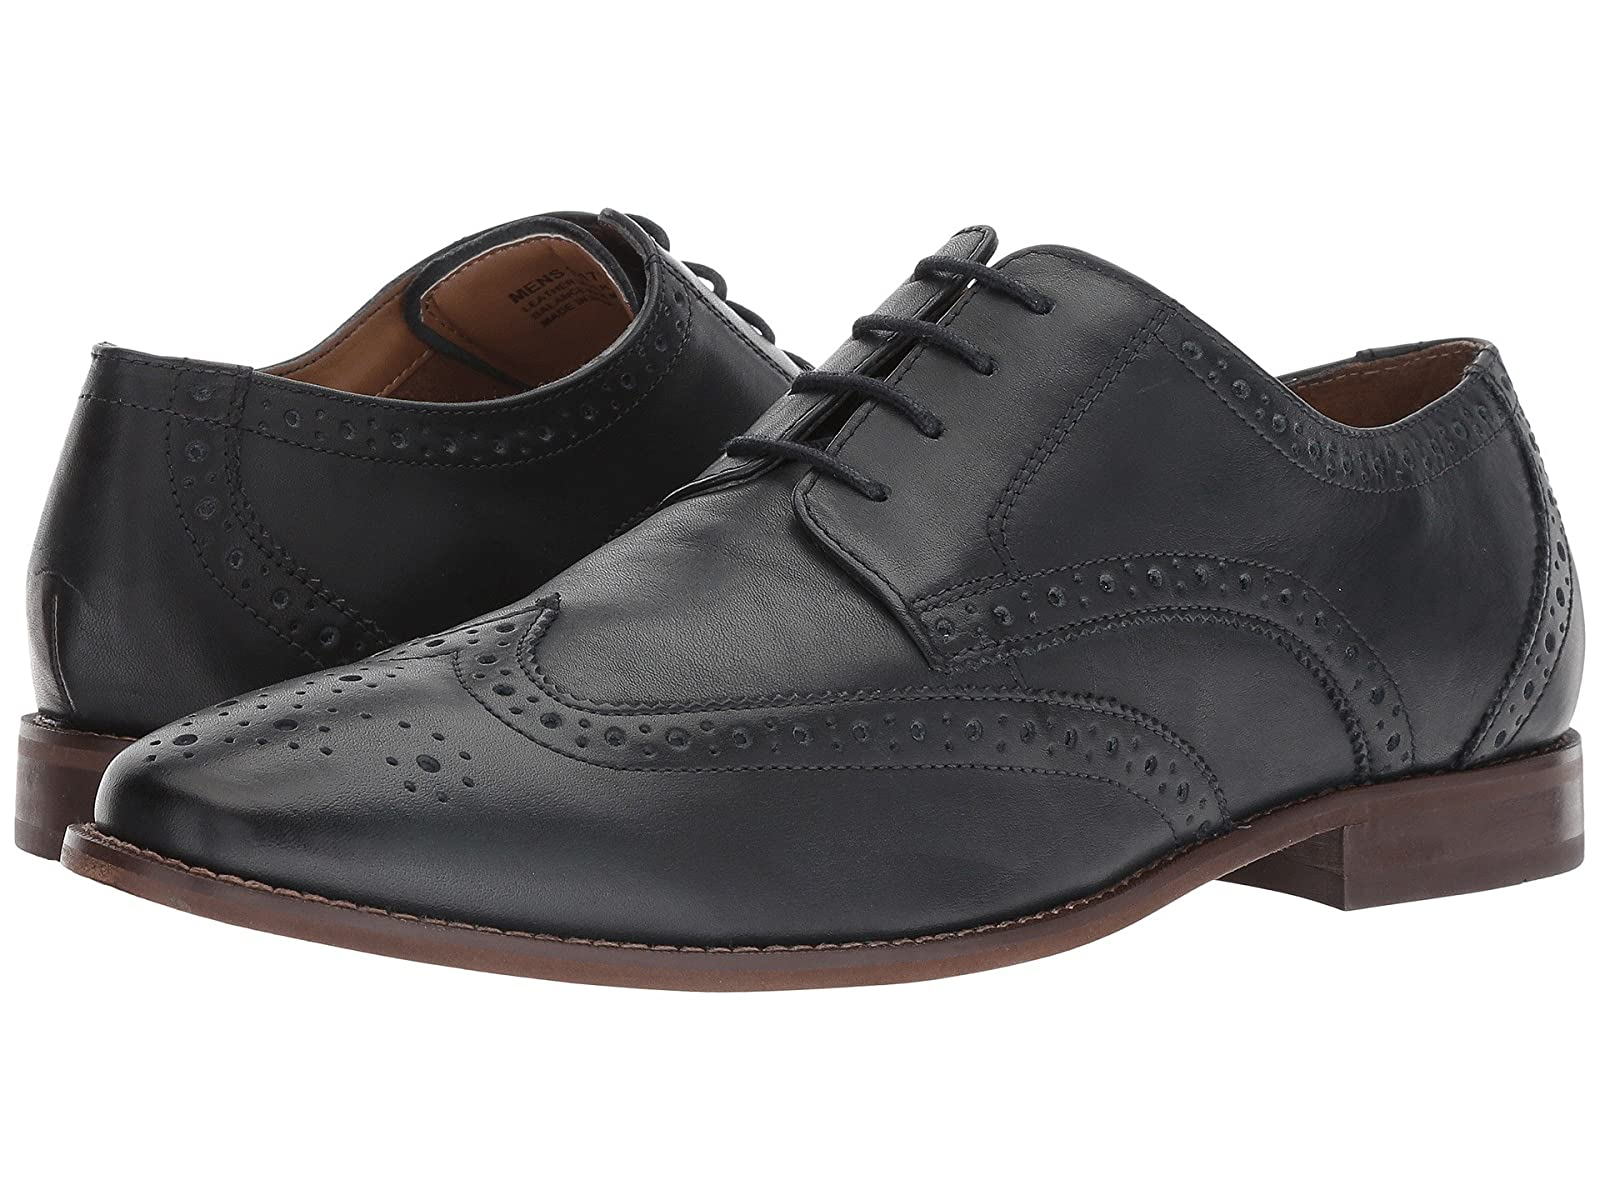 Florsheim Finley Wing-Tip OxfordCheap and distinctive eye-catching shoes